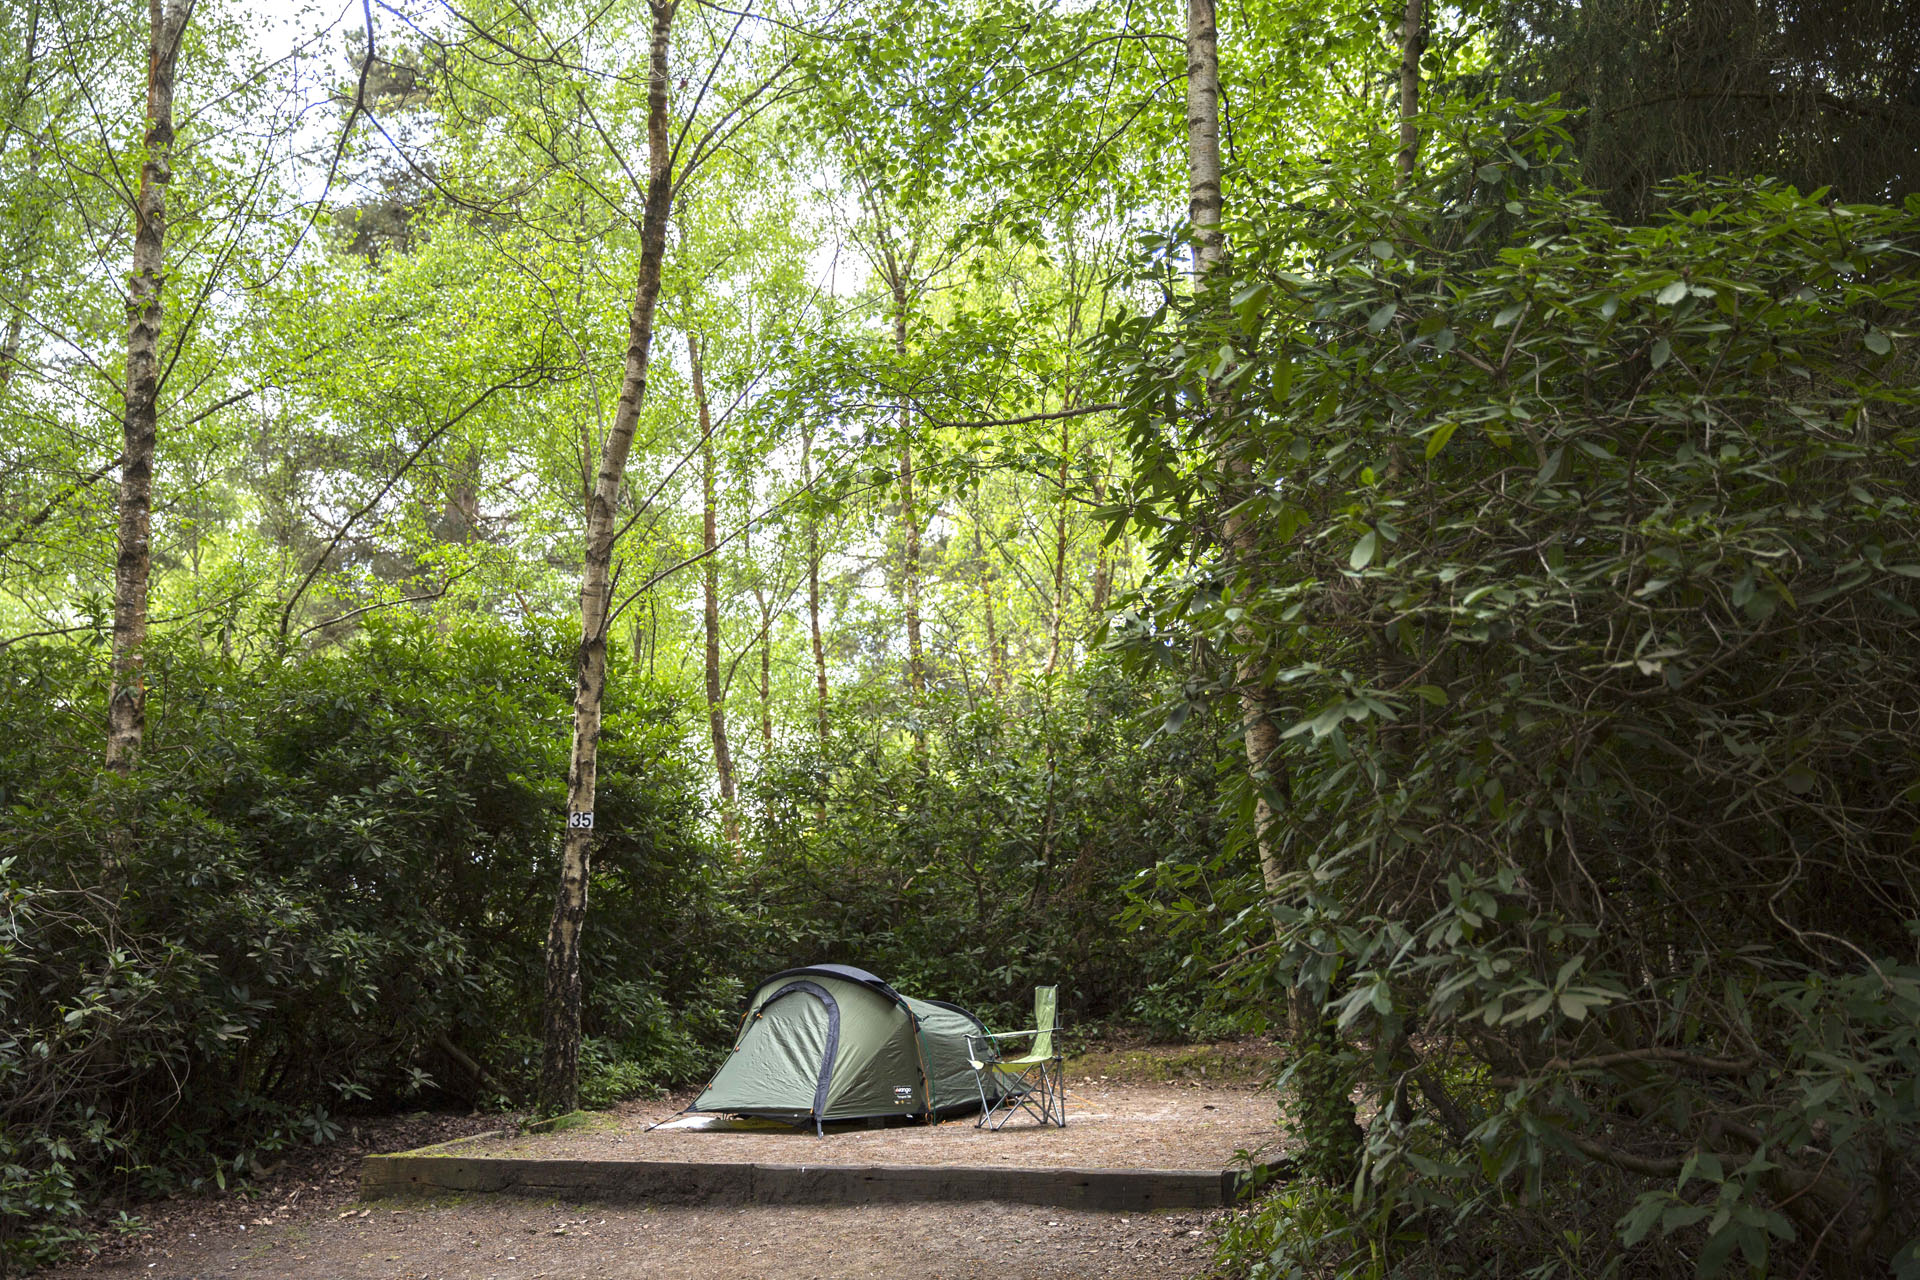 Graffham - Camping and Caravanning Club Site - The Camping